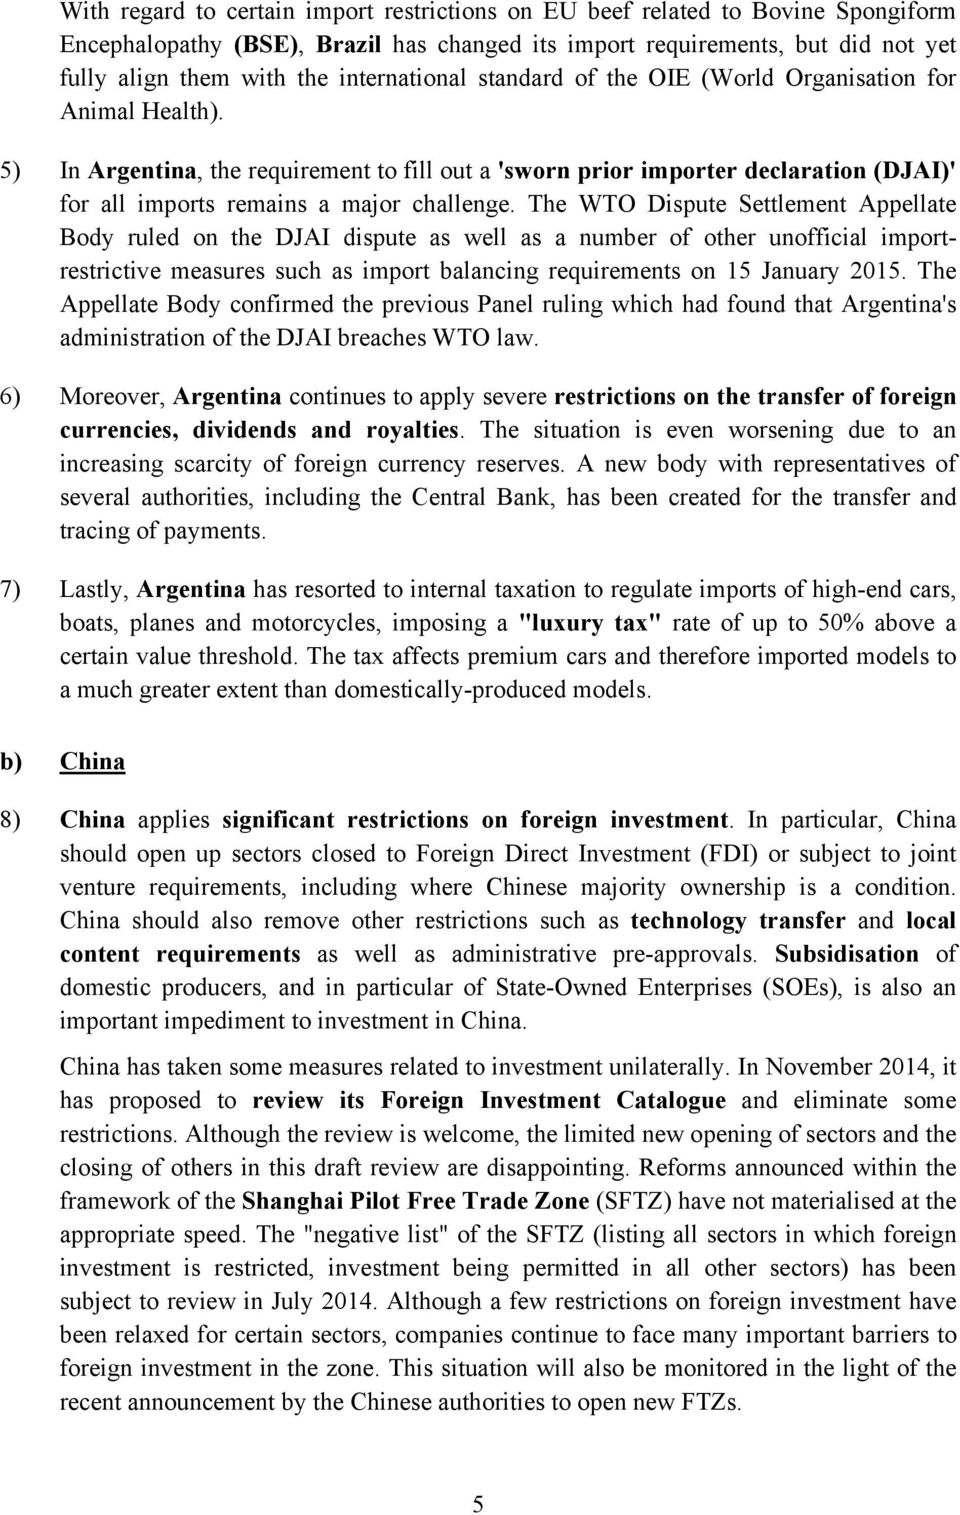 5) In Argentina, the requirement to fill out a 'sworn prior importer declaration (DJAI)' for all imports remains a major challenge.